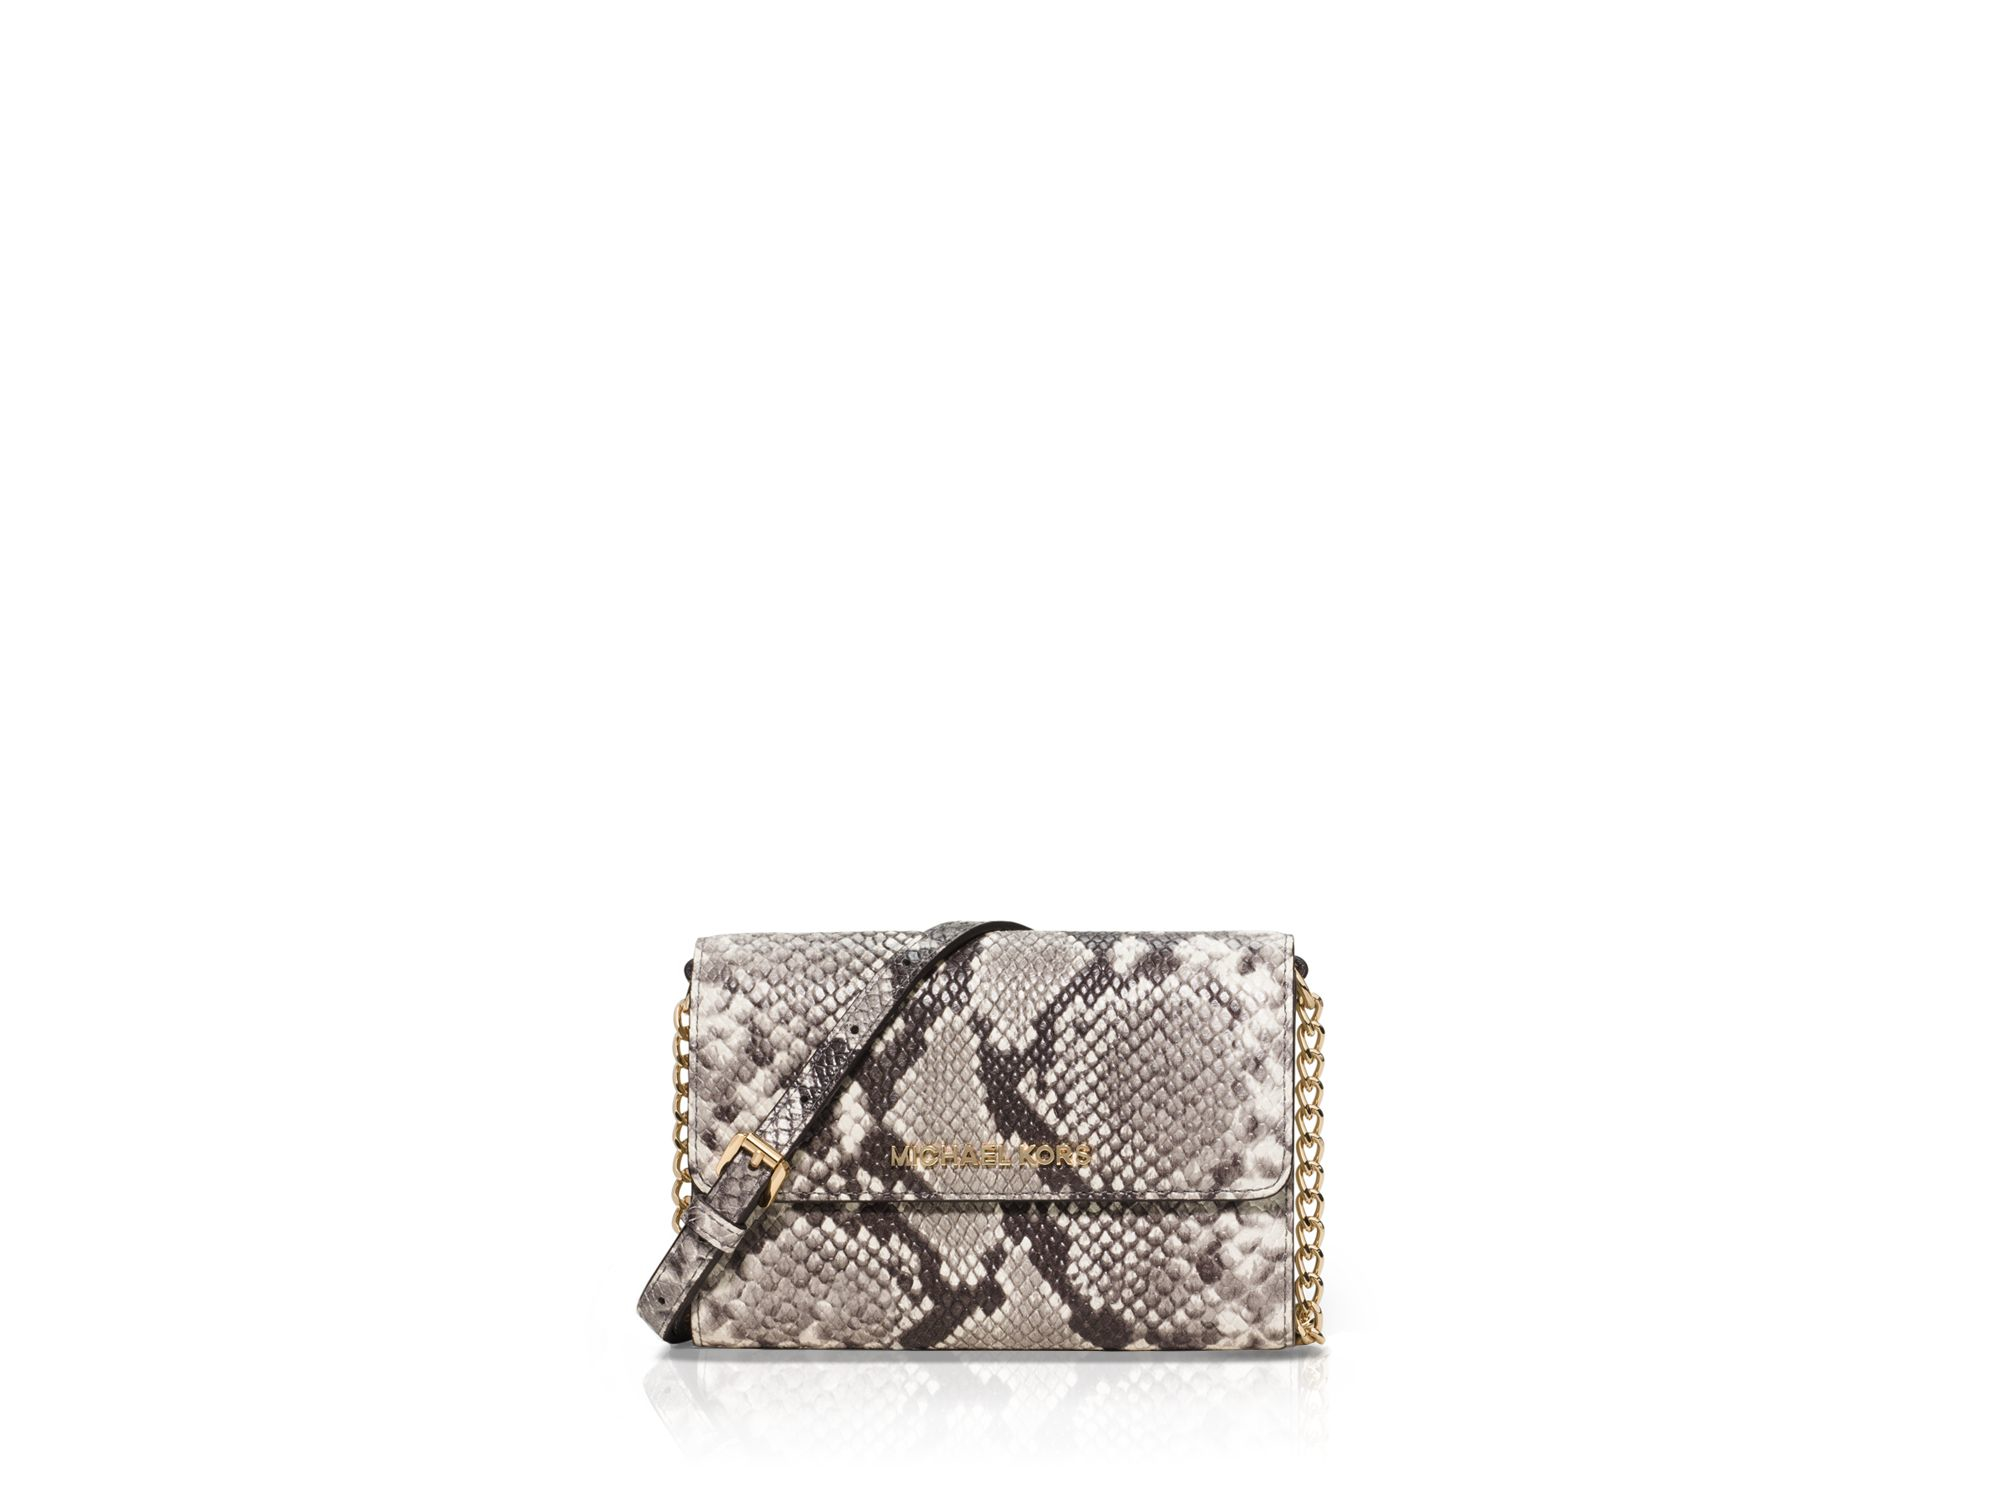 10ae0bccaa0537 MICHAEL Michael Kors Large Snake-embossed Smartphone Crossbody in ...